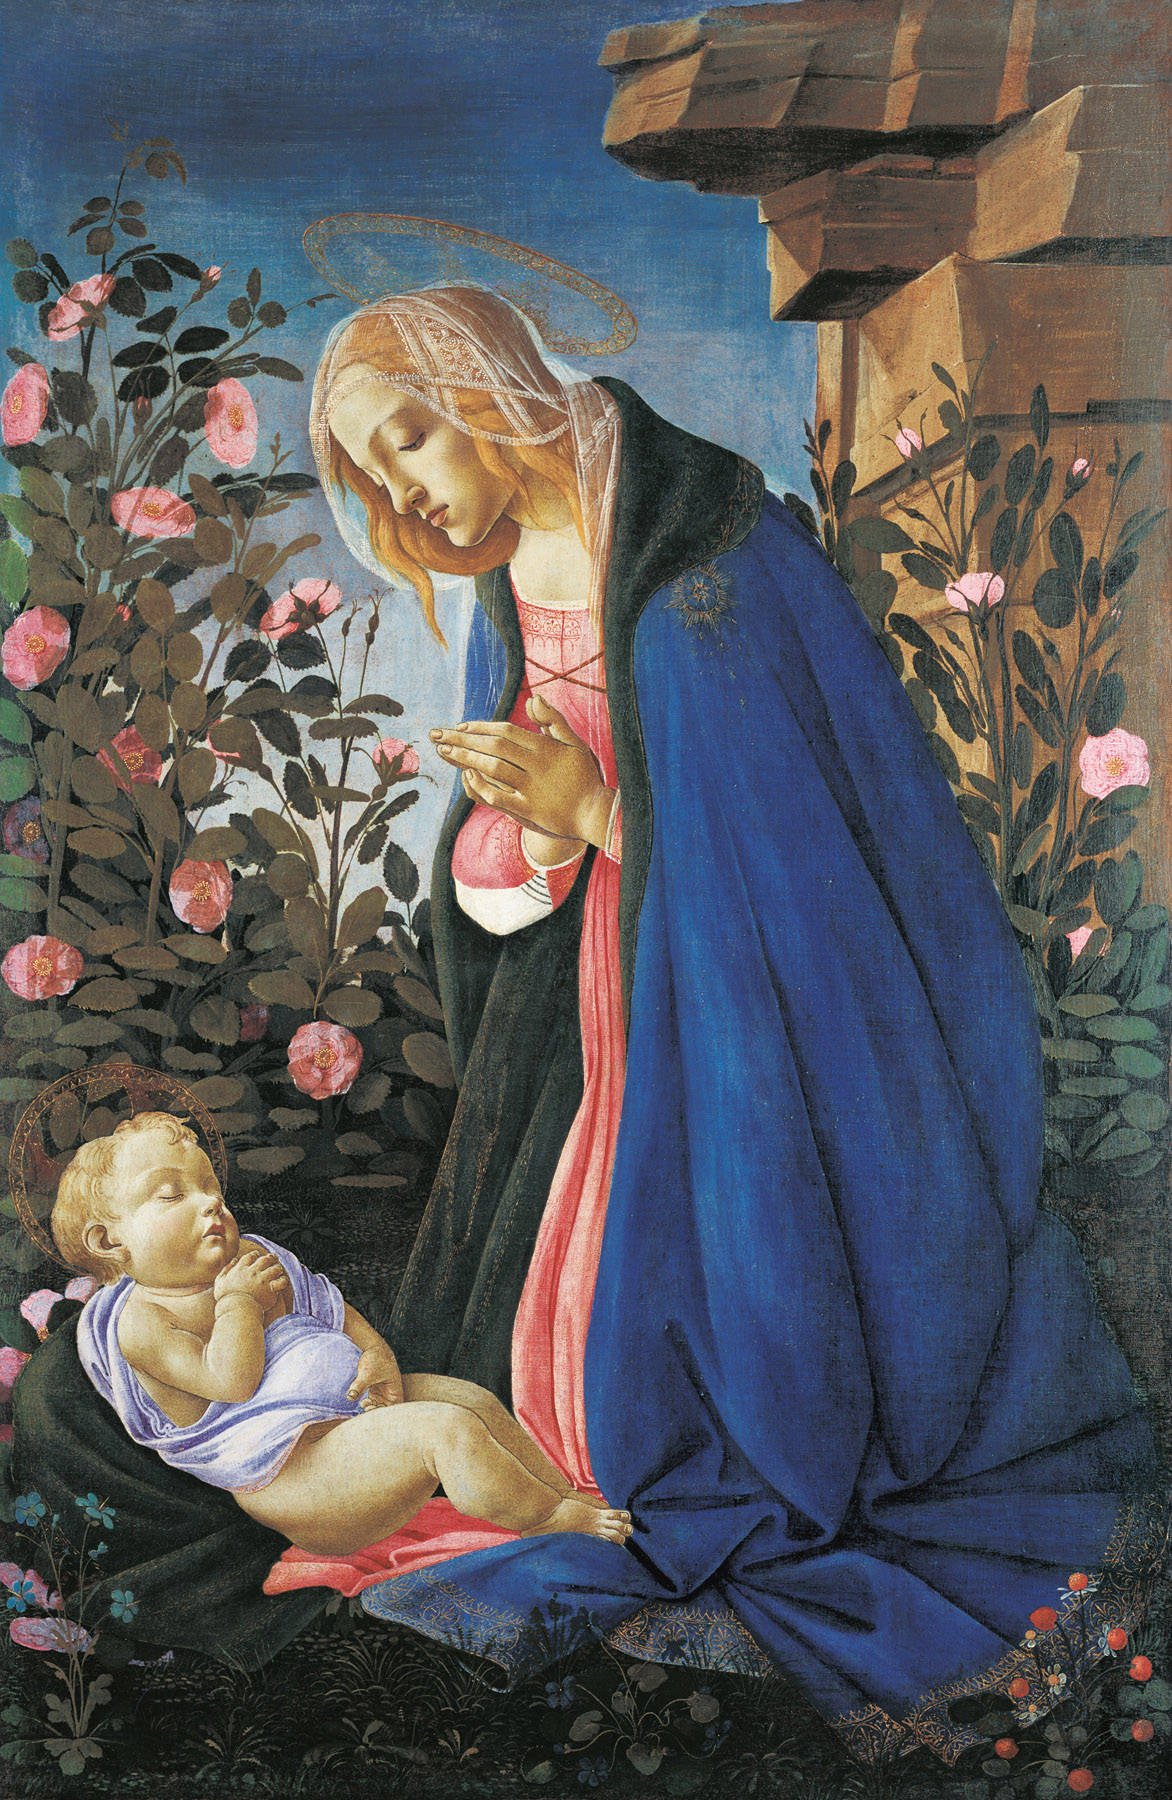 soulhospital:  The Virgin Adoring the Sleeping Christ Child - Sandro Botticelli, circa 1490. Renaissance Art - Tempera and gold on canvas, 122 x 80.5 cm. Permanent Collection of the National Gallery of Scotland, Edinburgh.